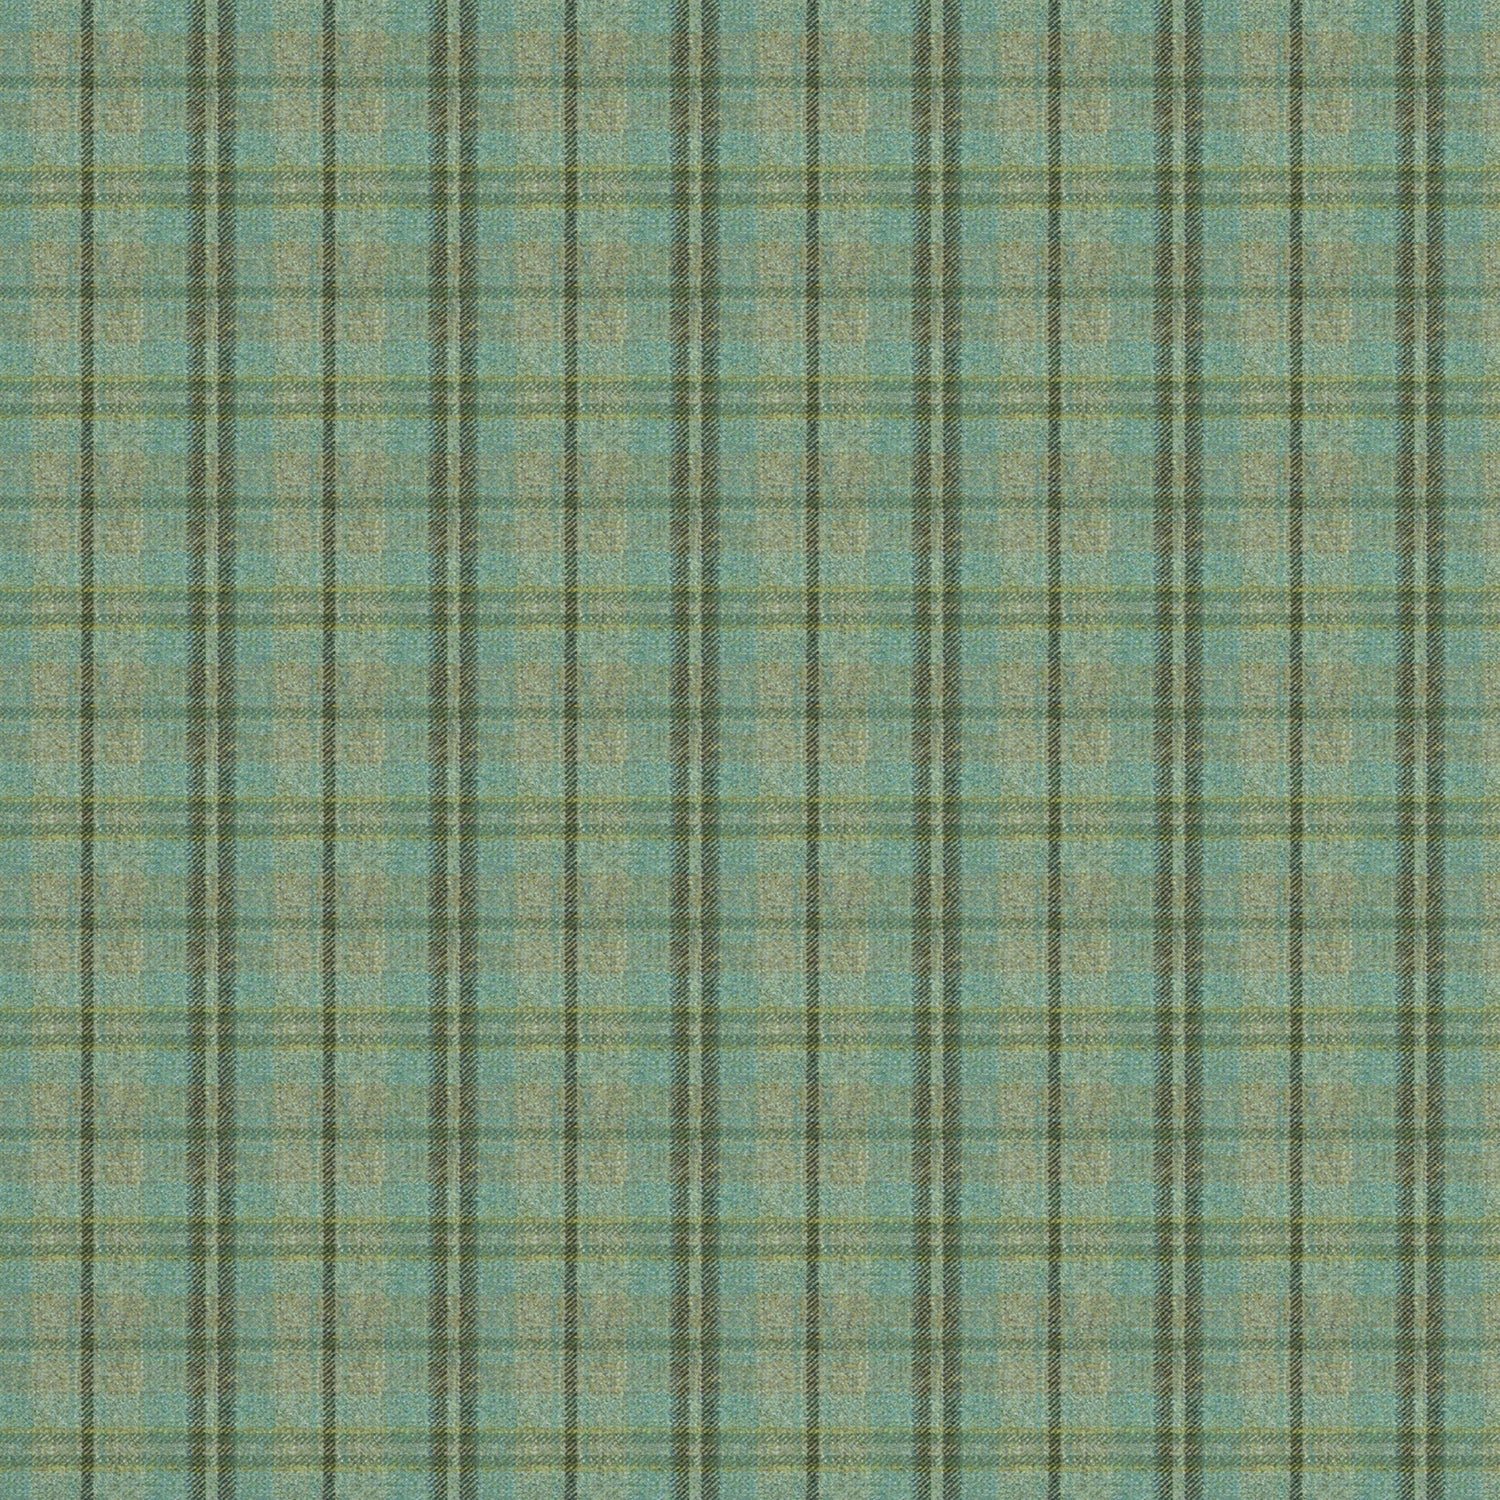 Fabric swatch of a luxury Scottish blue wool tartan fabric suitable for curtains and upholstery